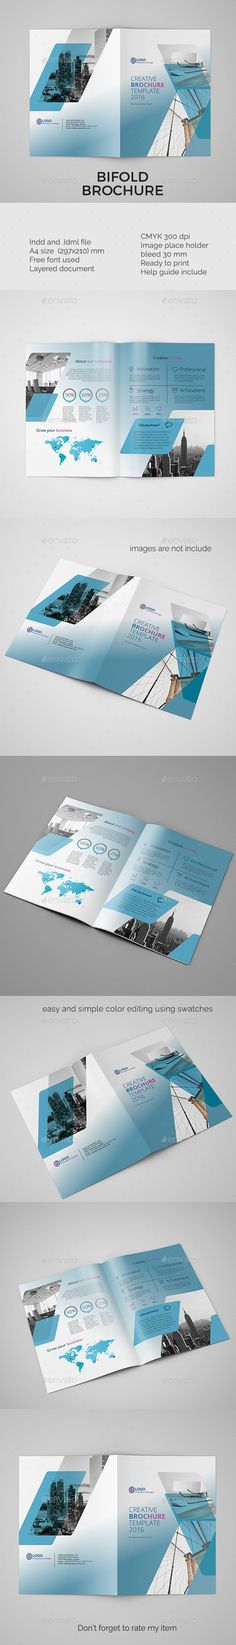 Corporate bifold brochure vol 4 - InDesign Template • Only available here ➝ http://graphicriver.net/item/corporate-bifold-brochure-vol-4/16928284?ref=pxcr